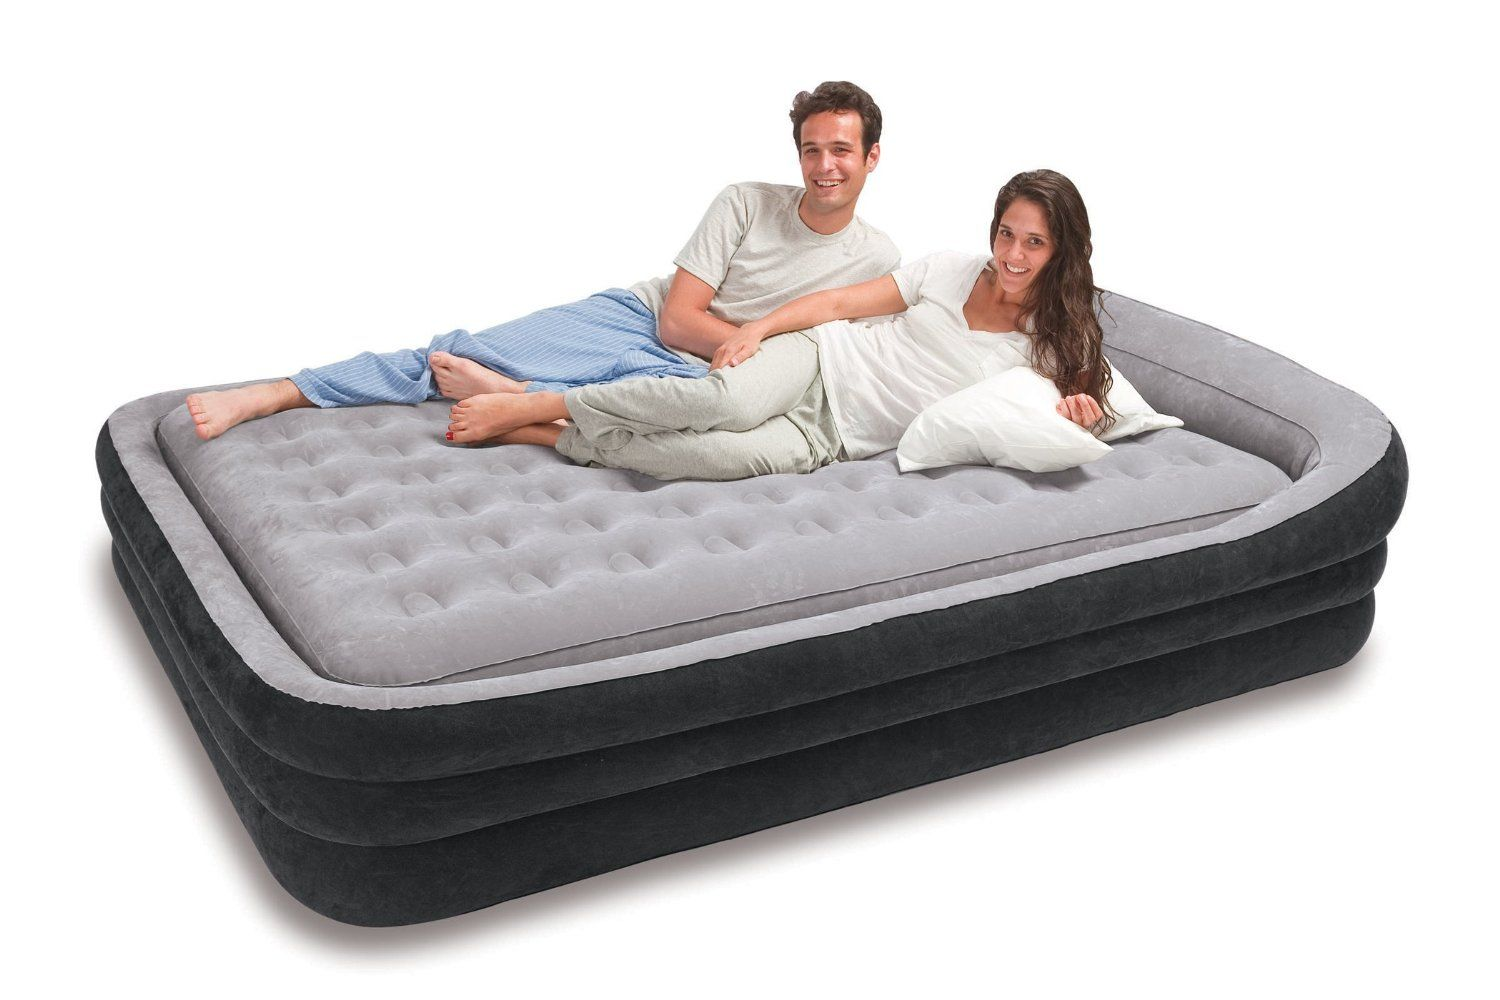 King Size Air Bed Camping Pin By James Menta On On My Air Mattress Blog Inflatable Bed